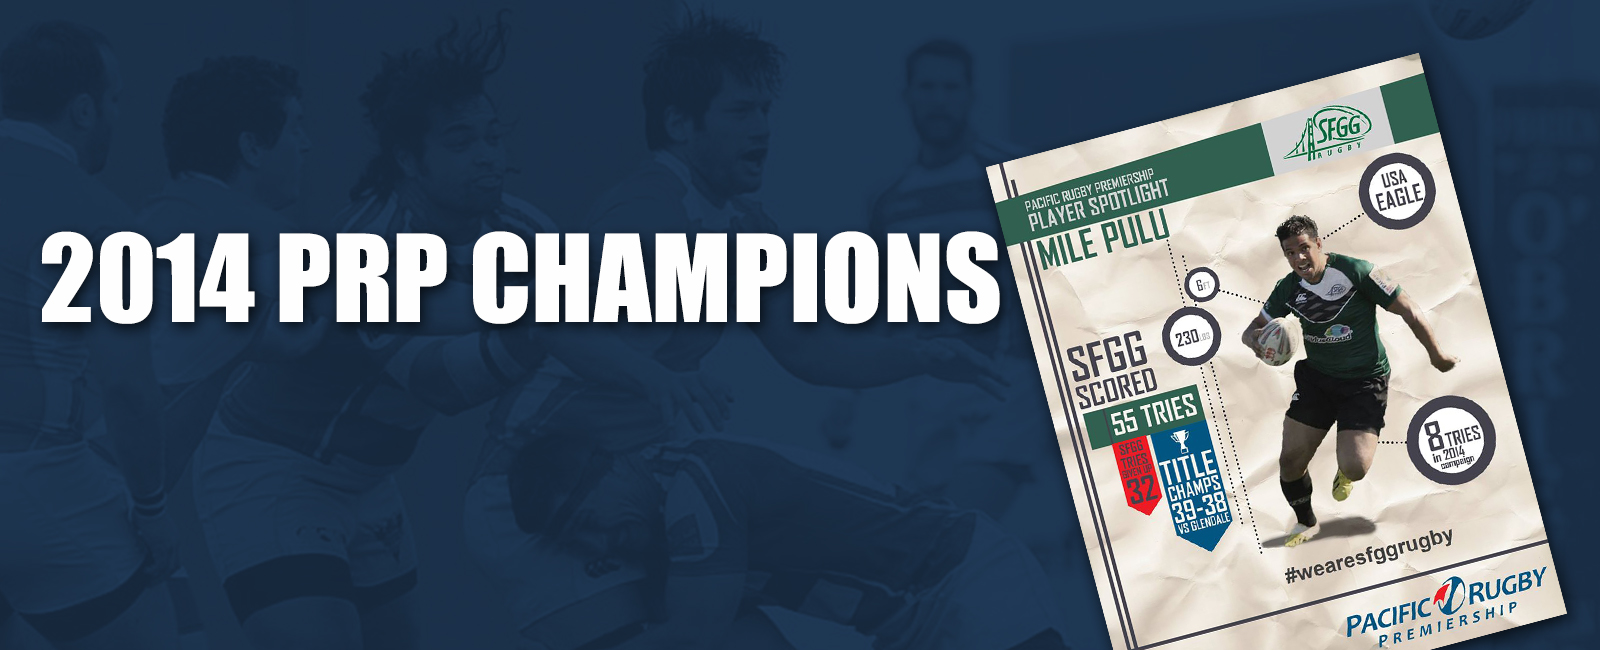 We proudly introduce the 2014 PRP Champions – SFGG Rugby!